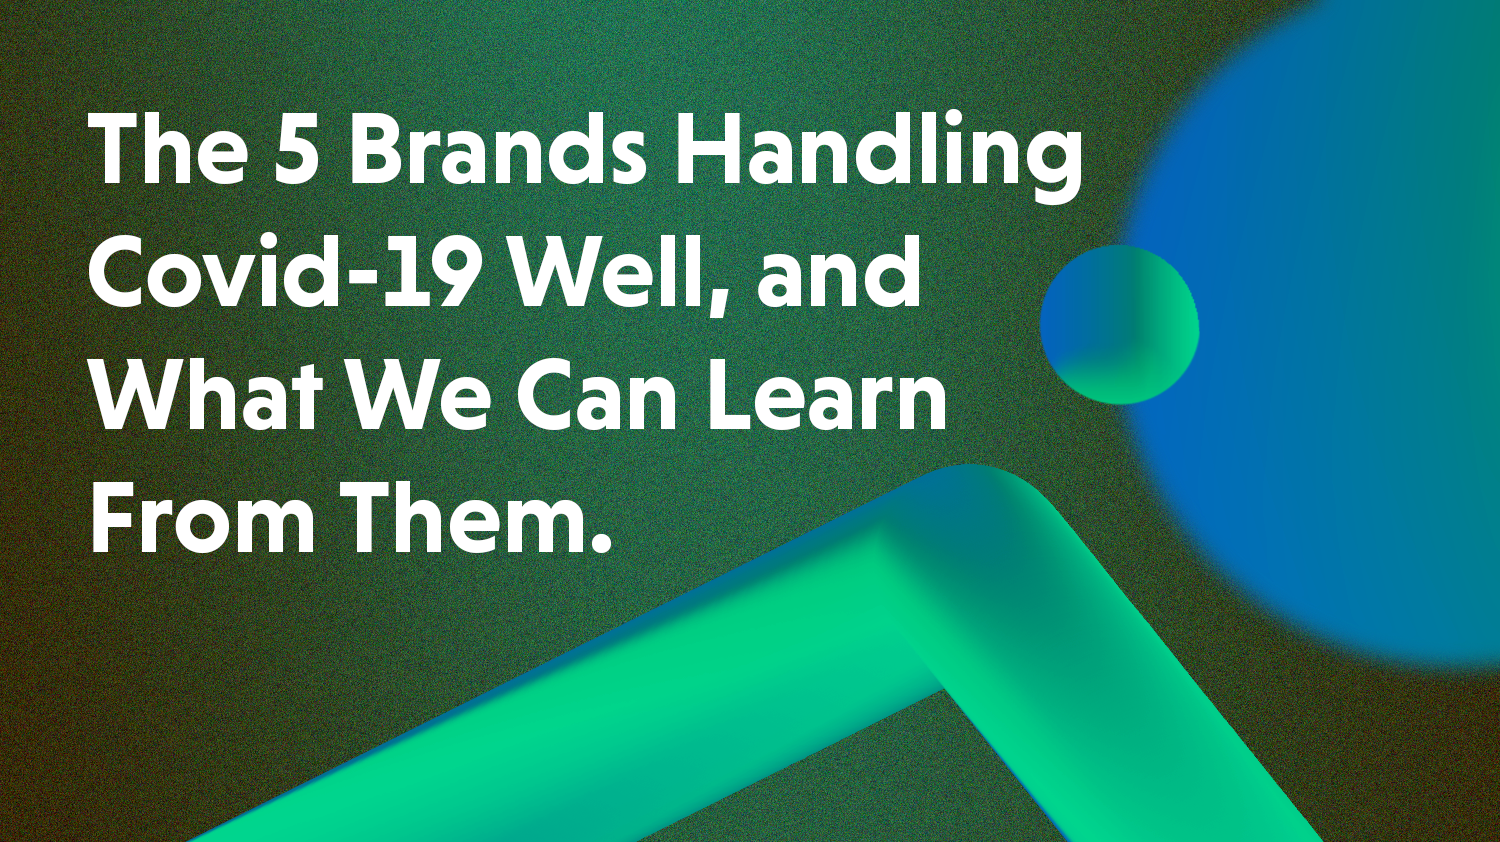 The 5 Brands Handling Lockdown Well - What We Can Learn From Them